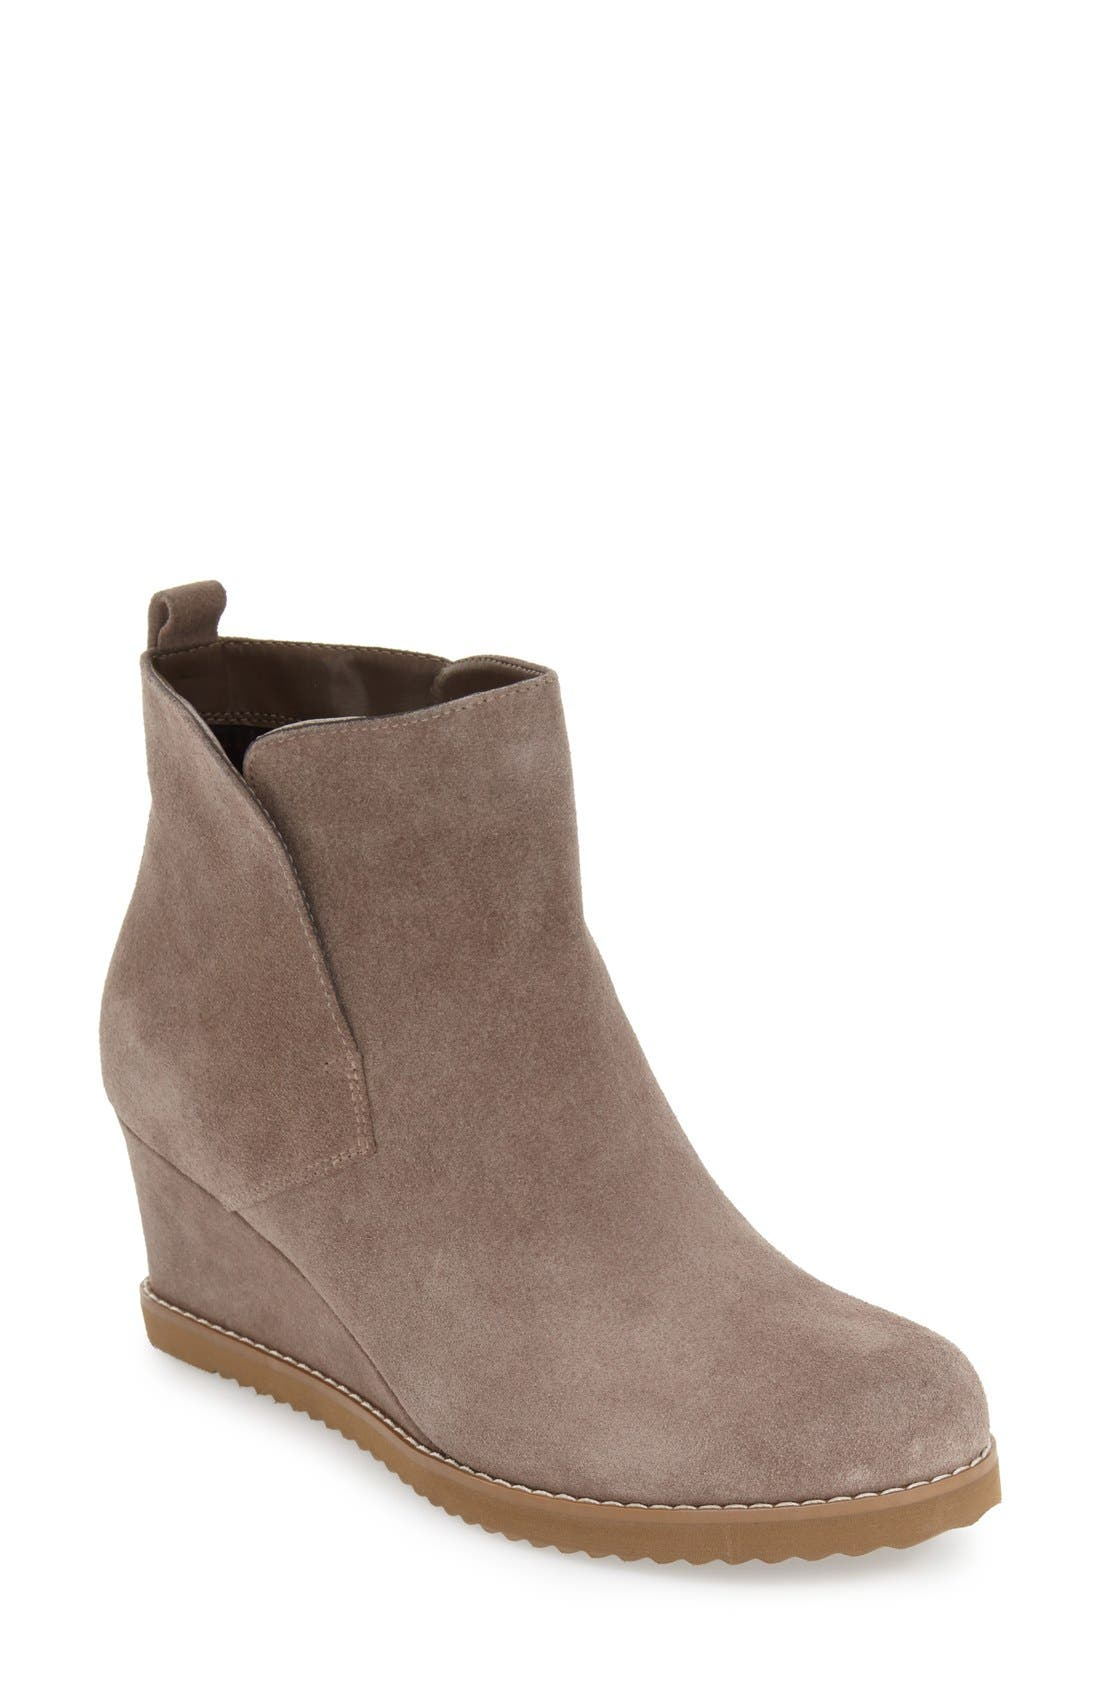 'Karla' Waterproof Wedge Bootie,                         Main,                         color,